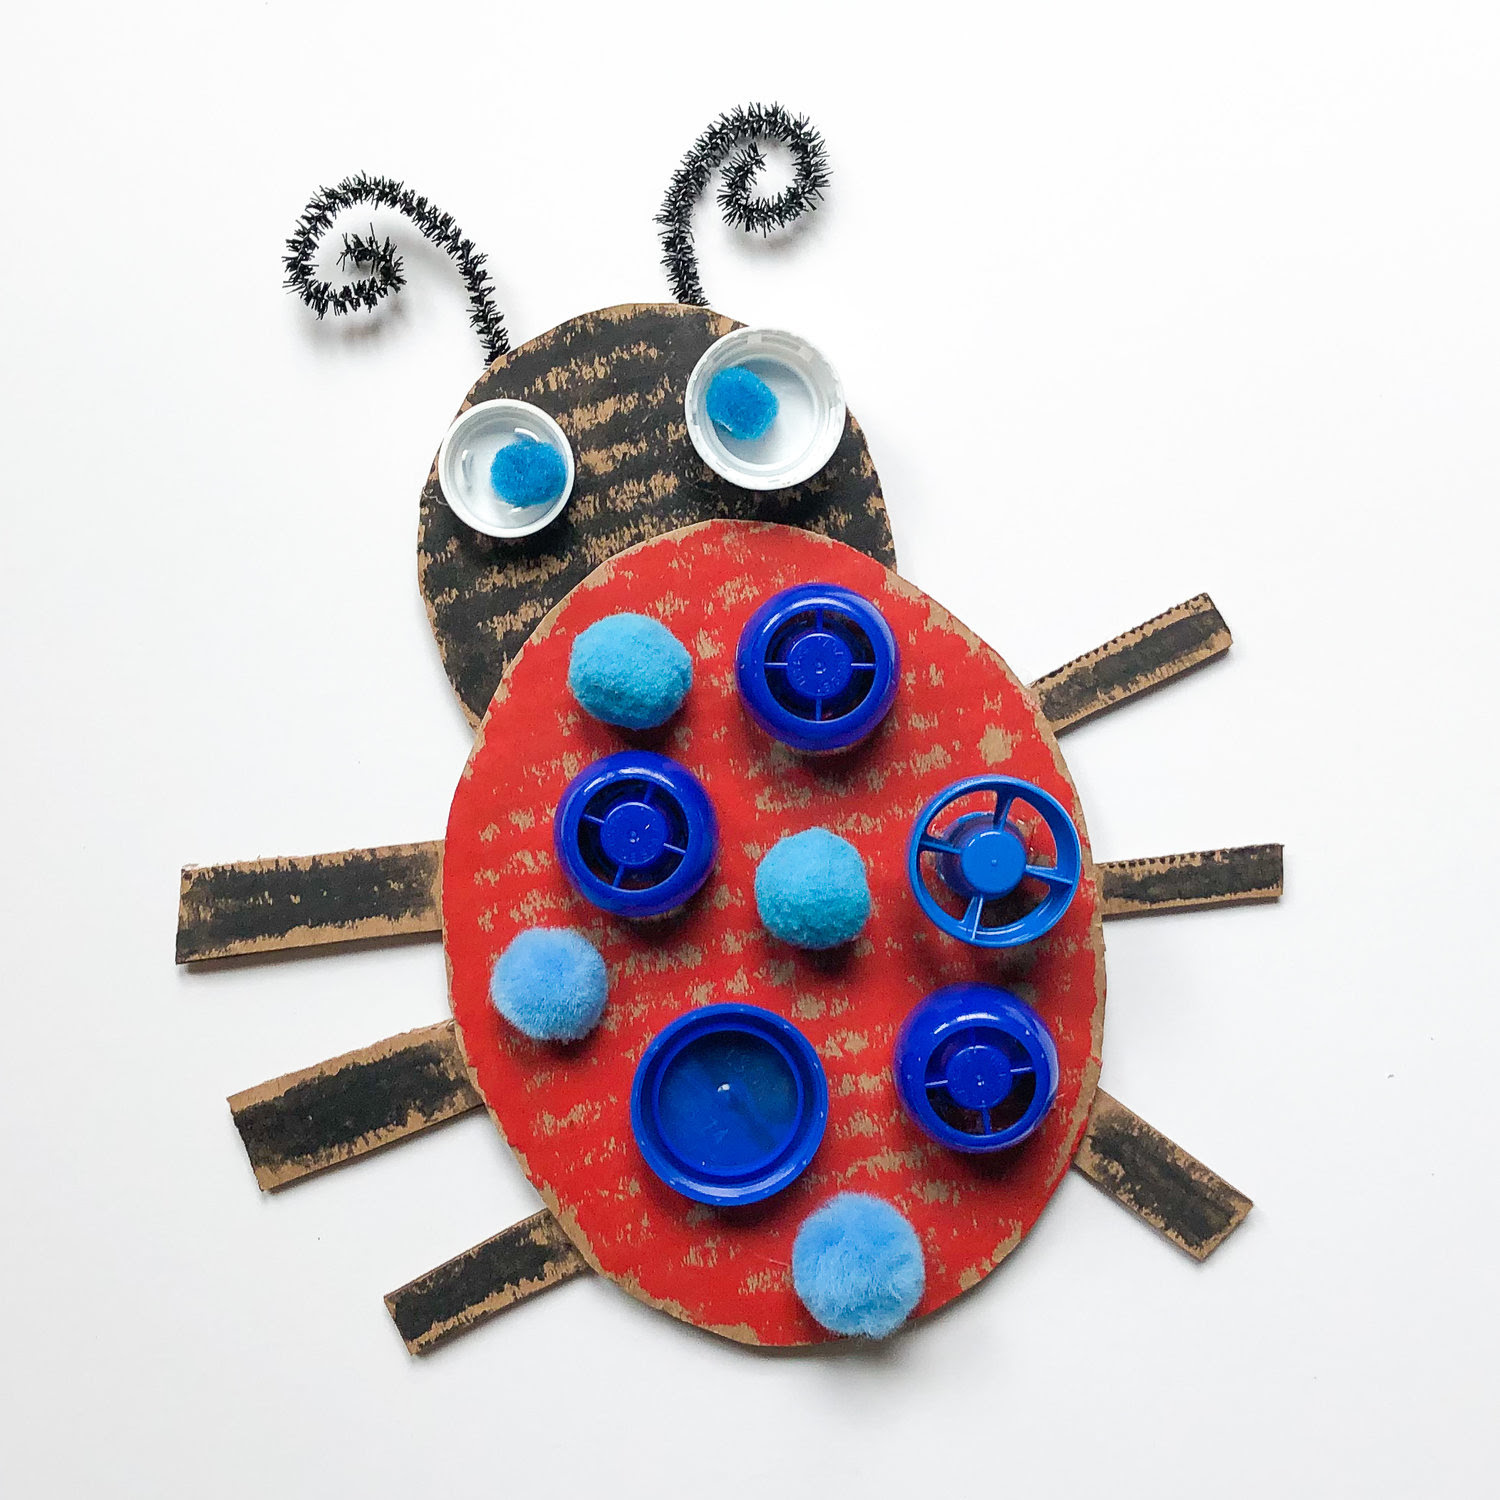 Educating Creative Hobby And Easy Bug Crafts For Toddlers